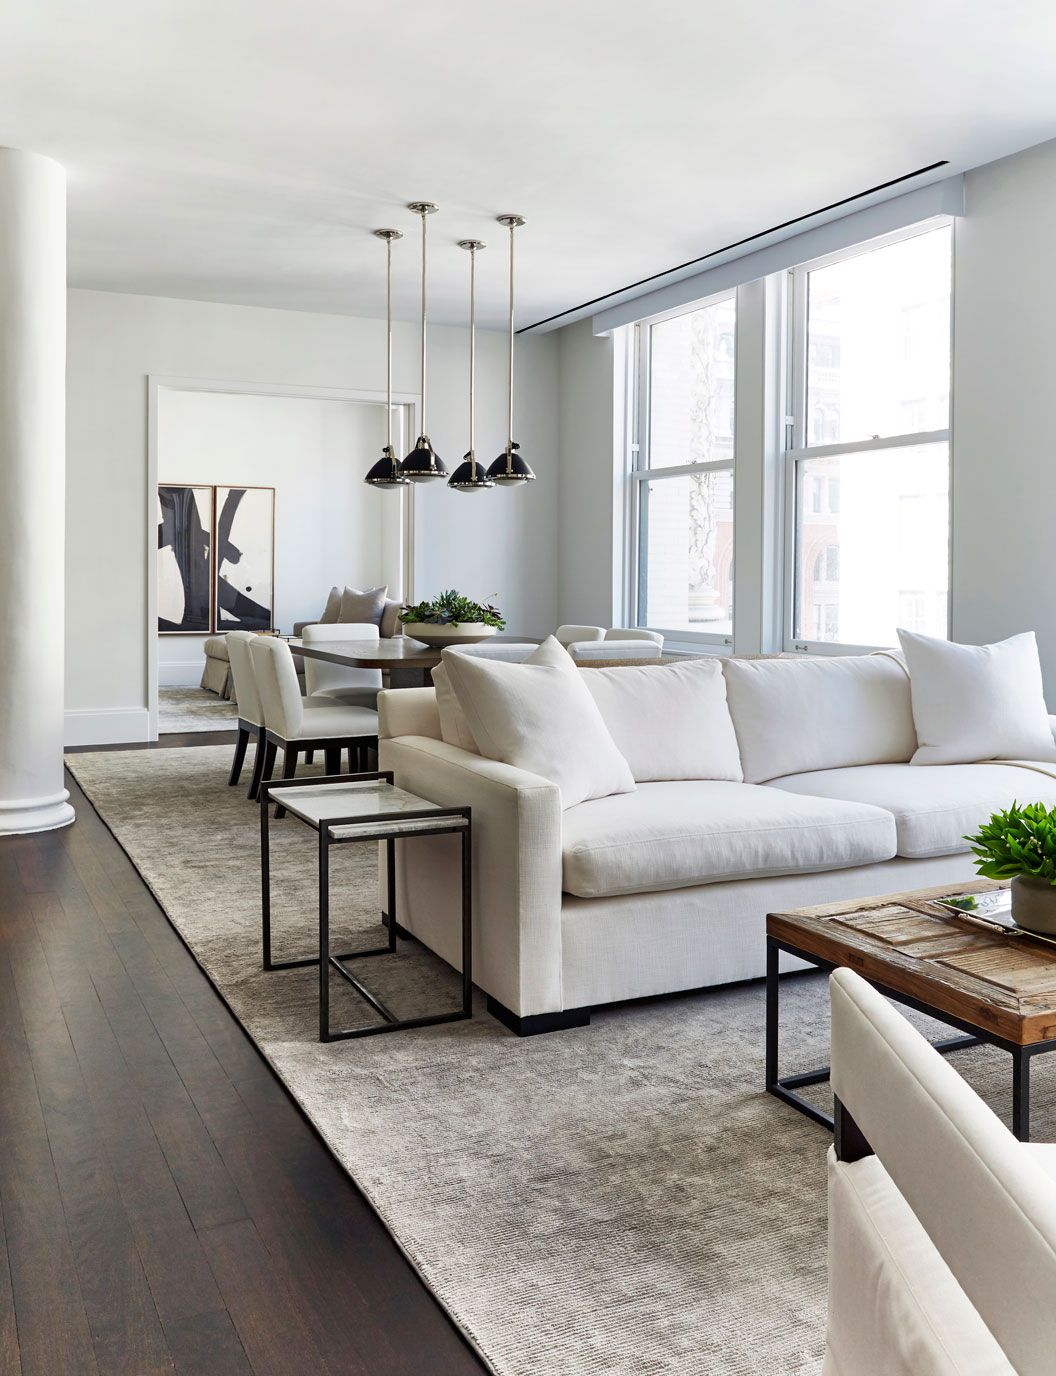 A Simple Neutral Living Room Design  Chango & Co Living Rooms Stunning Simple Living Room Furniture Designs Inspiration